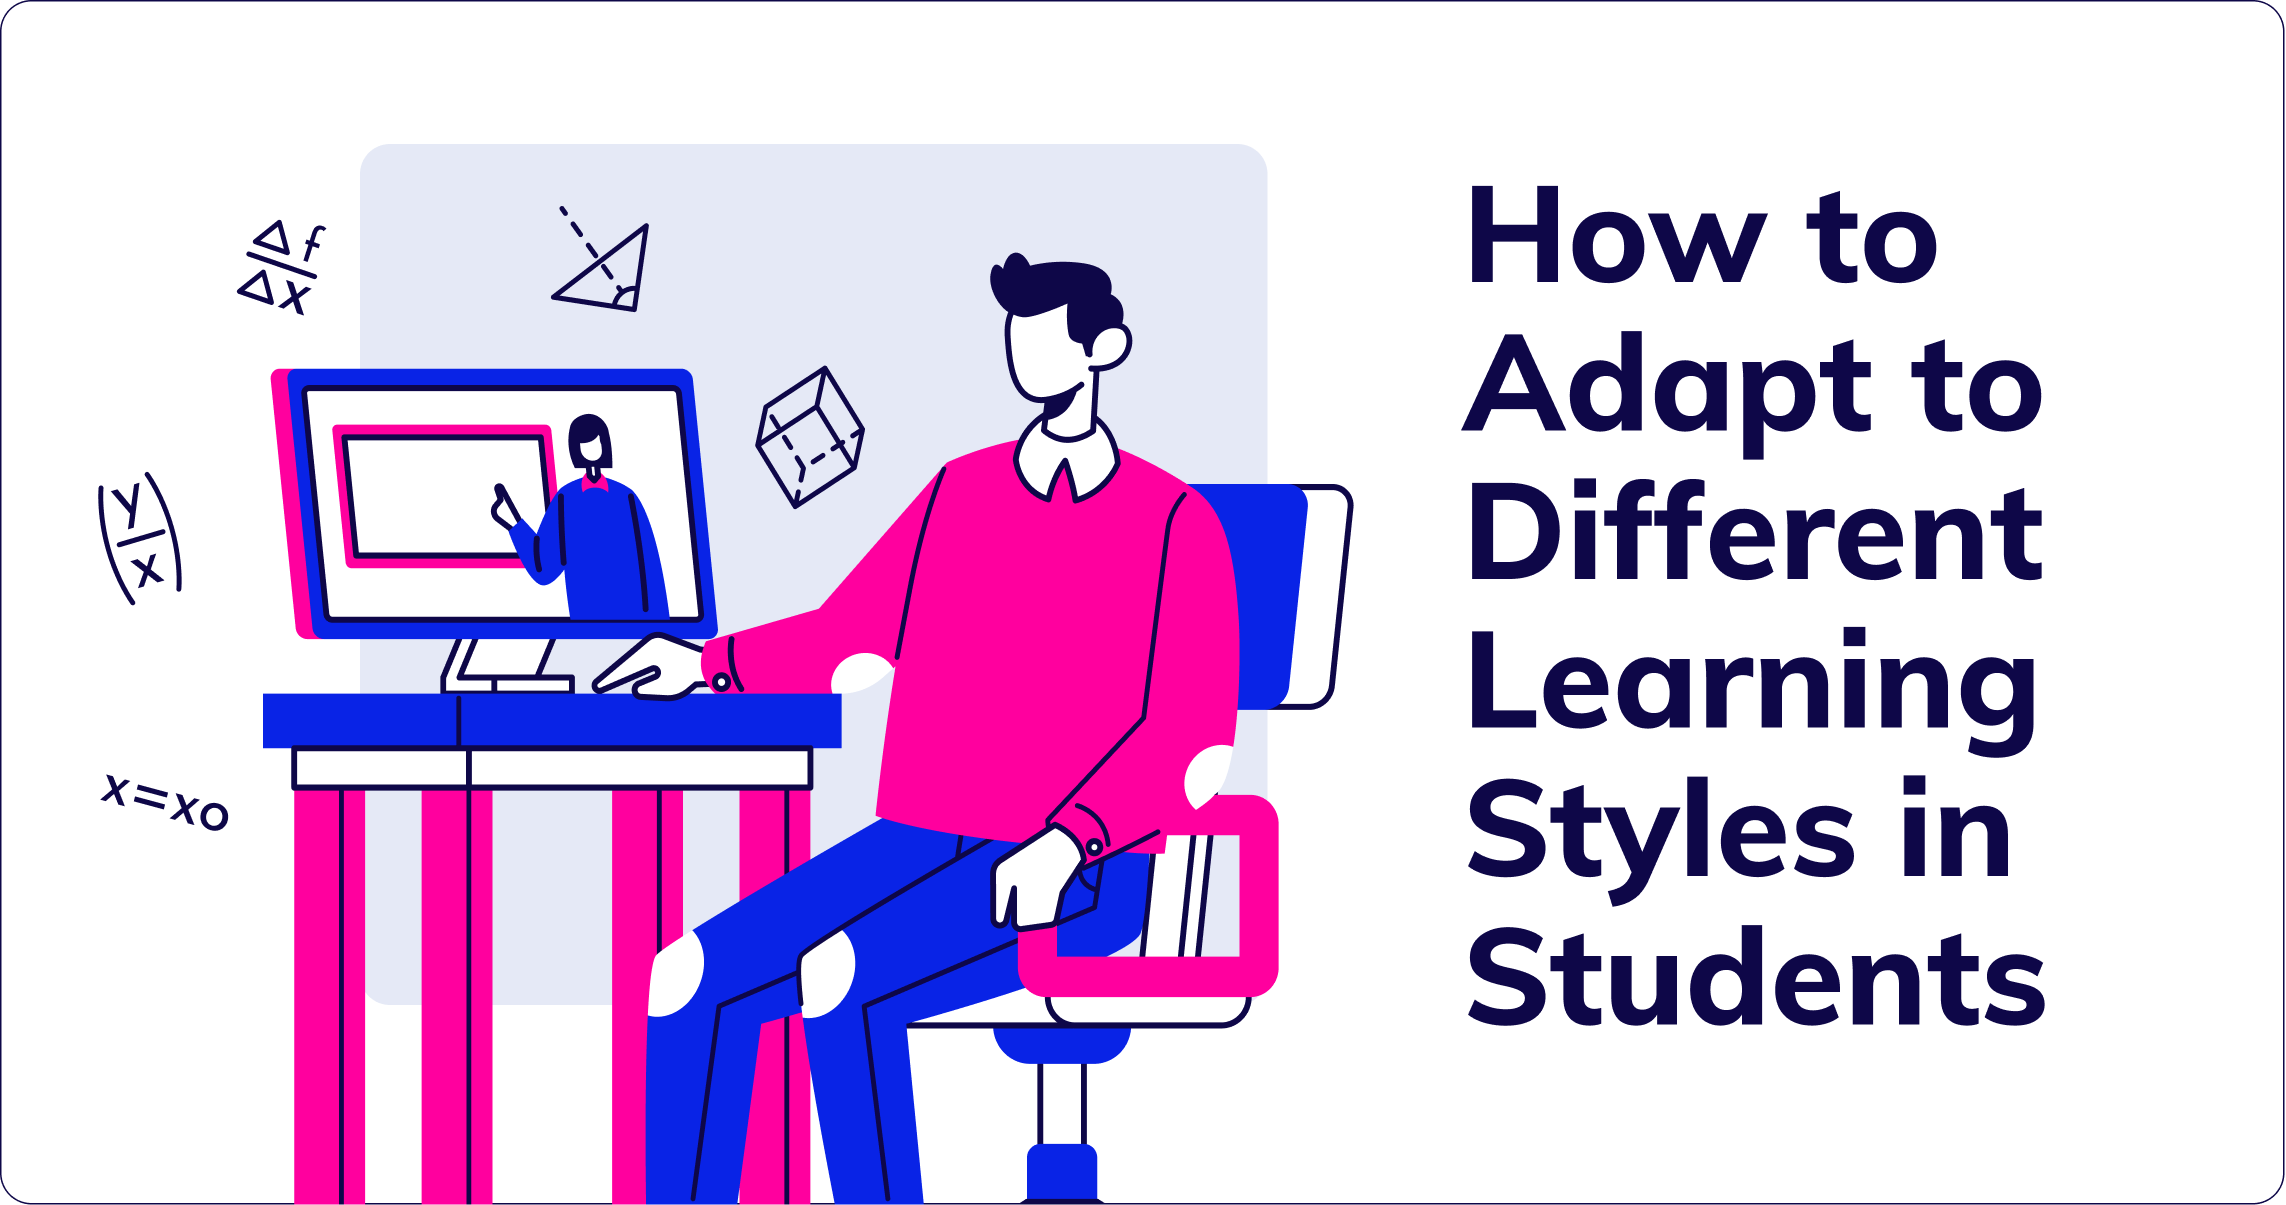 how-to-adapt-to-different-learning-styles-in-students